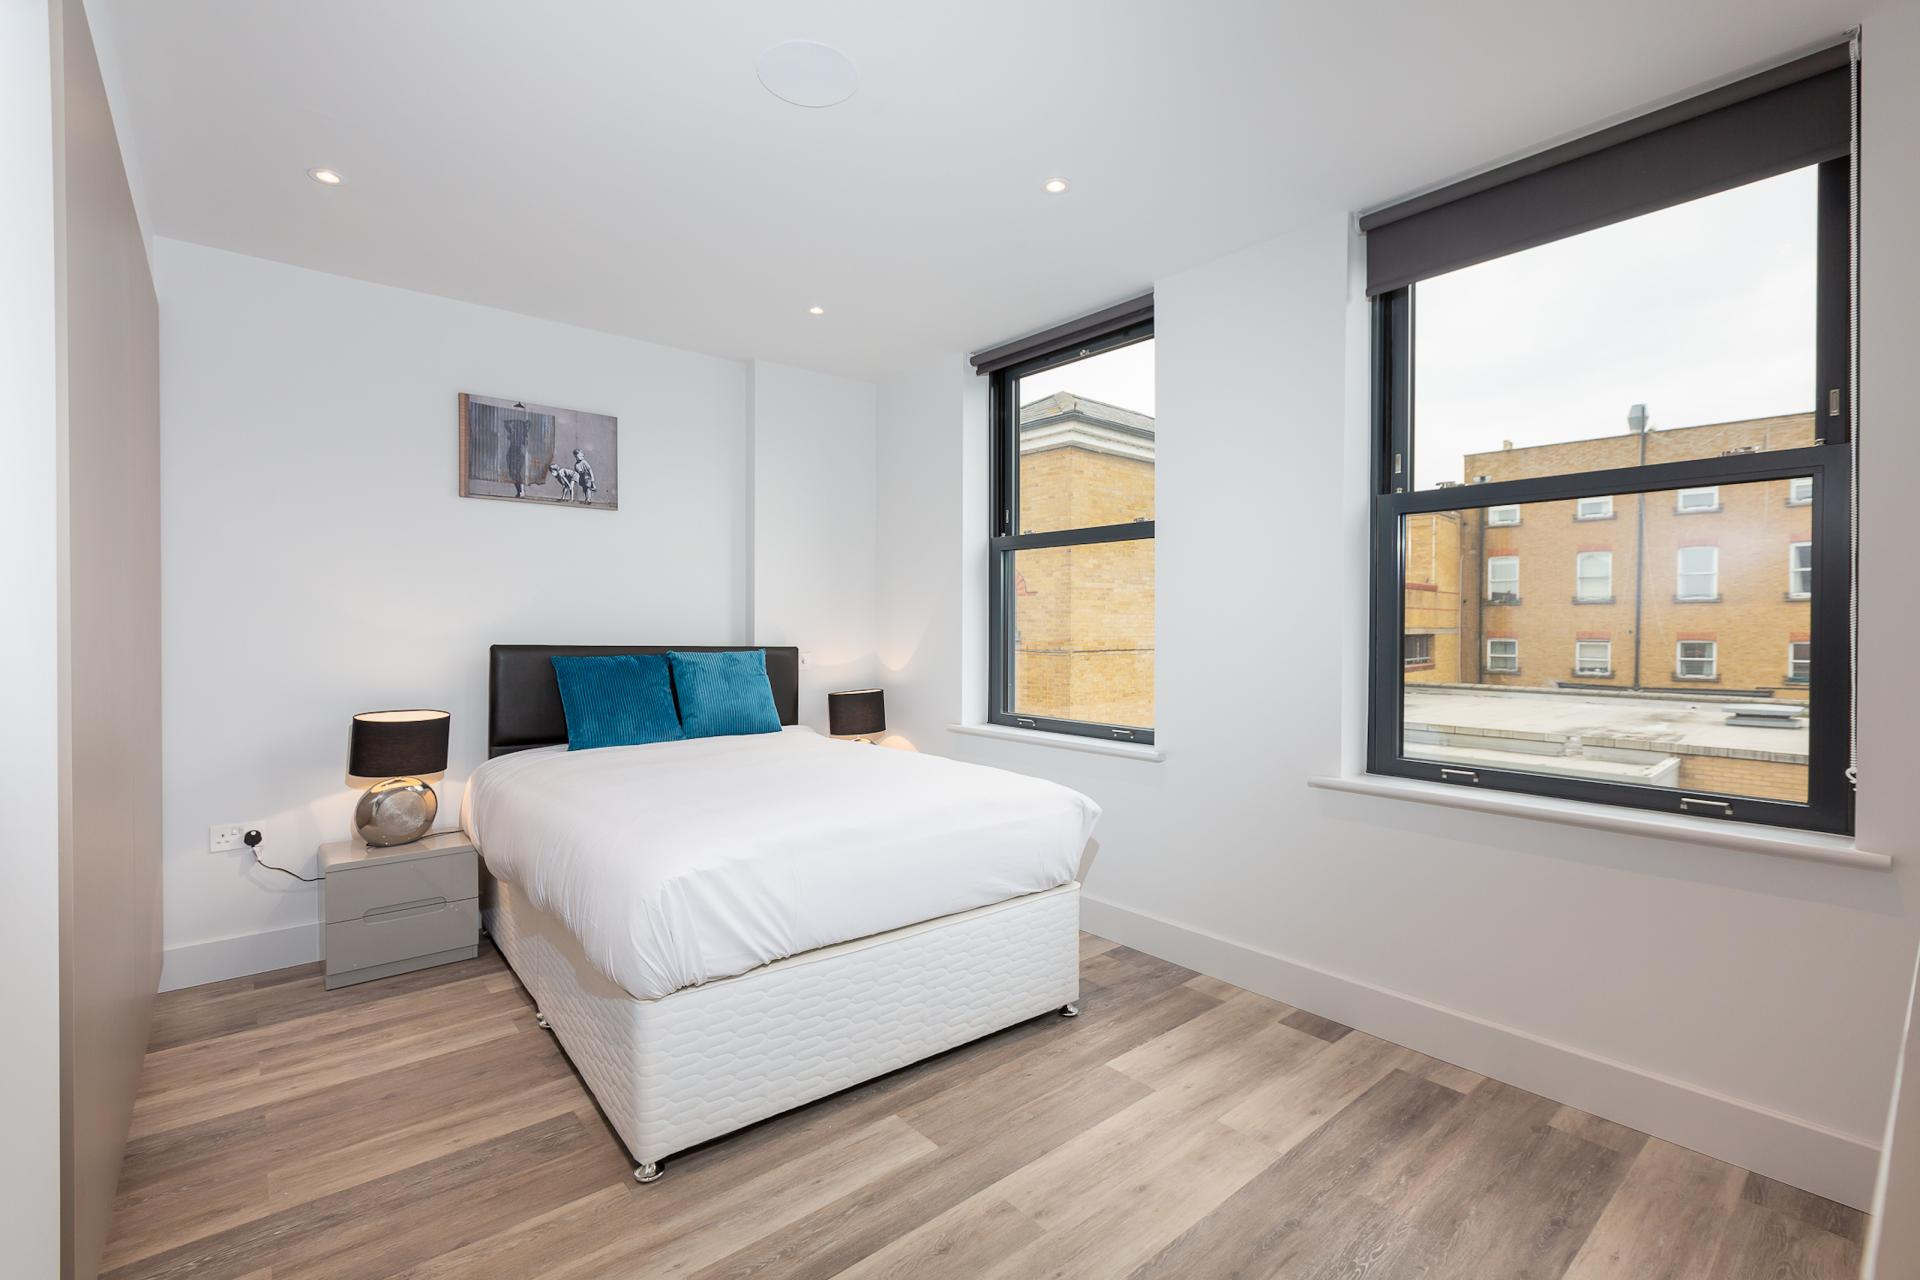 Bed at Fulham Serviced Apartments, Fulham, London - Citybase Apartments